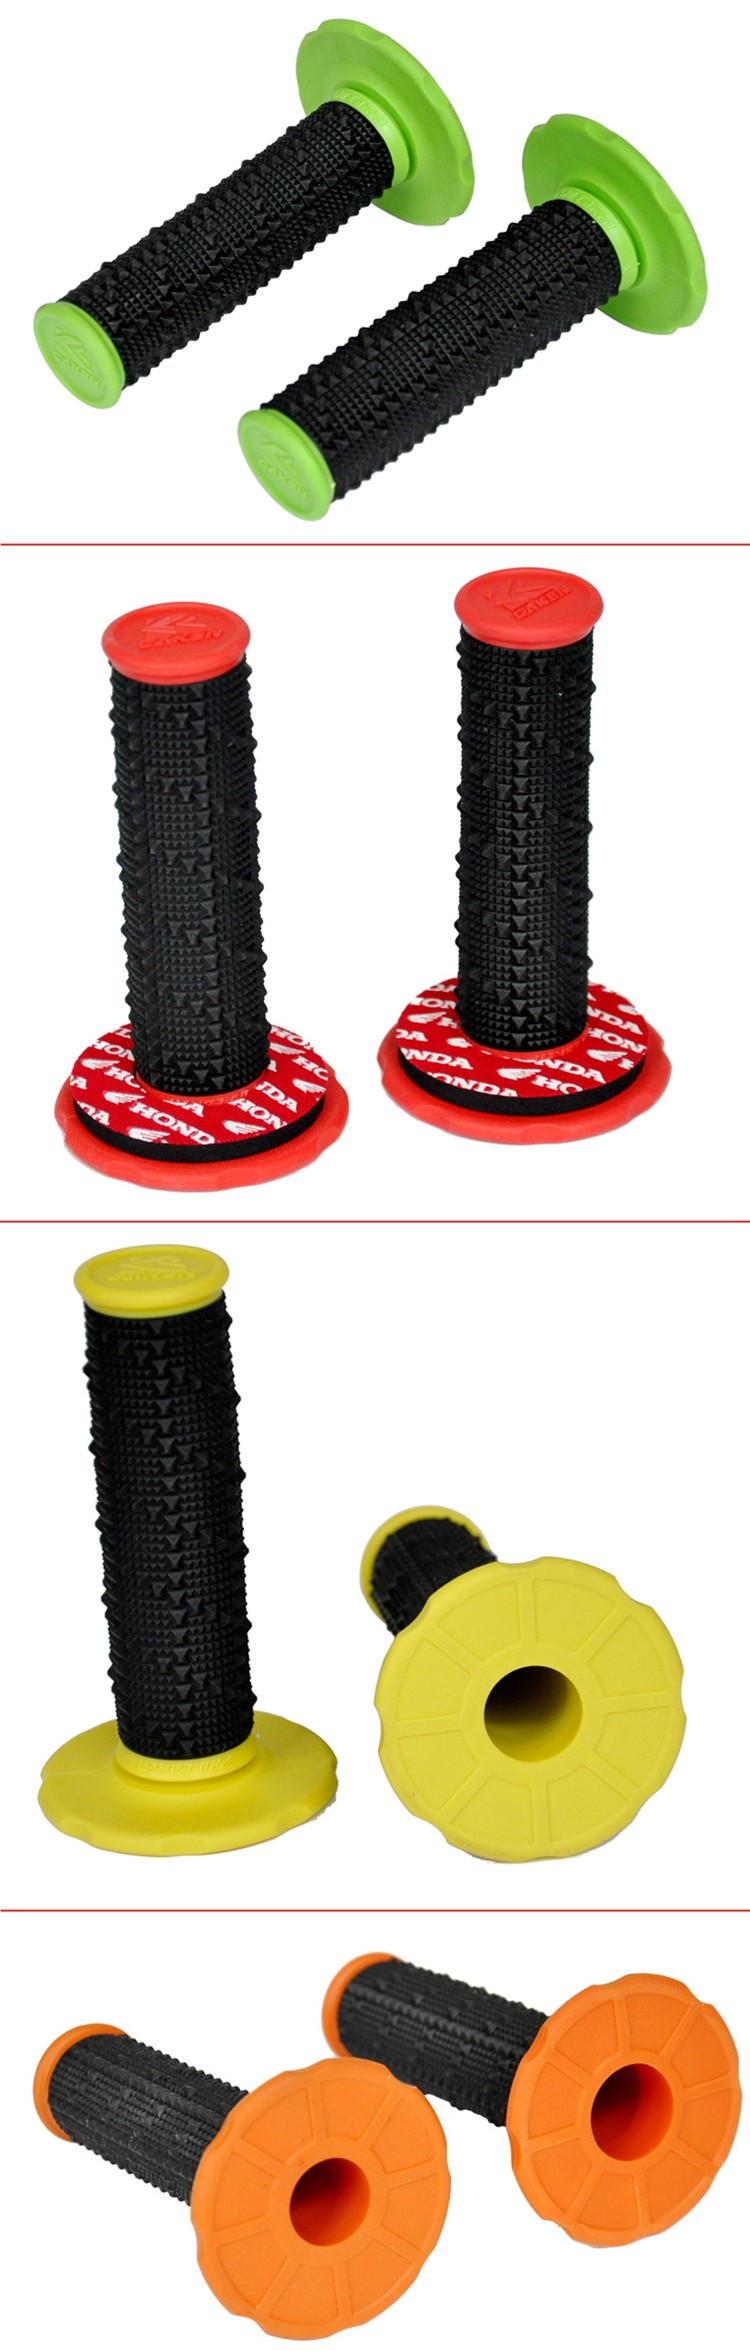 CRF 250 Handle Grip ,motorcycle grips,motocross handle grip